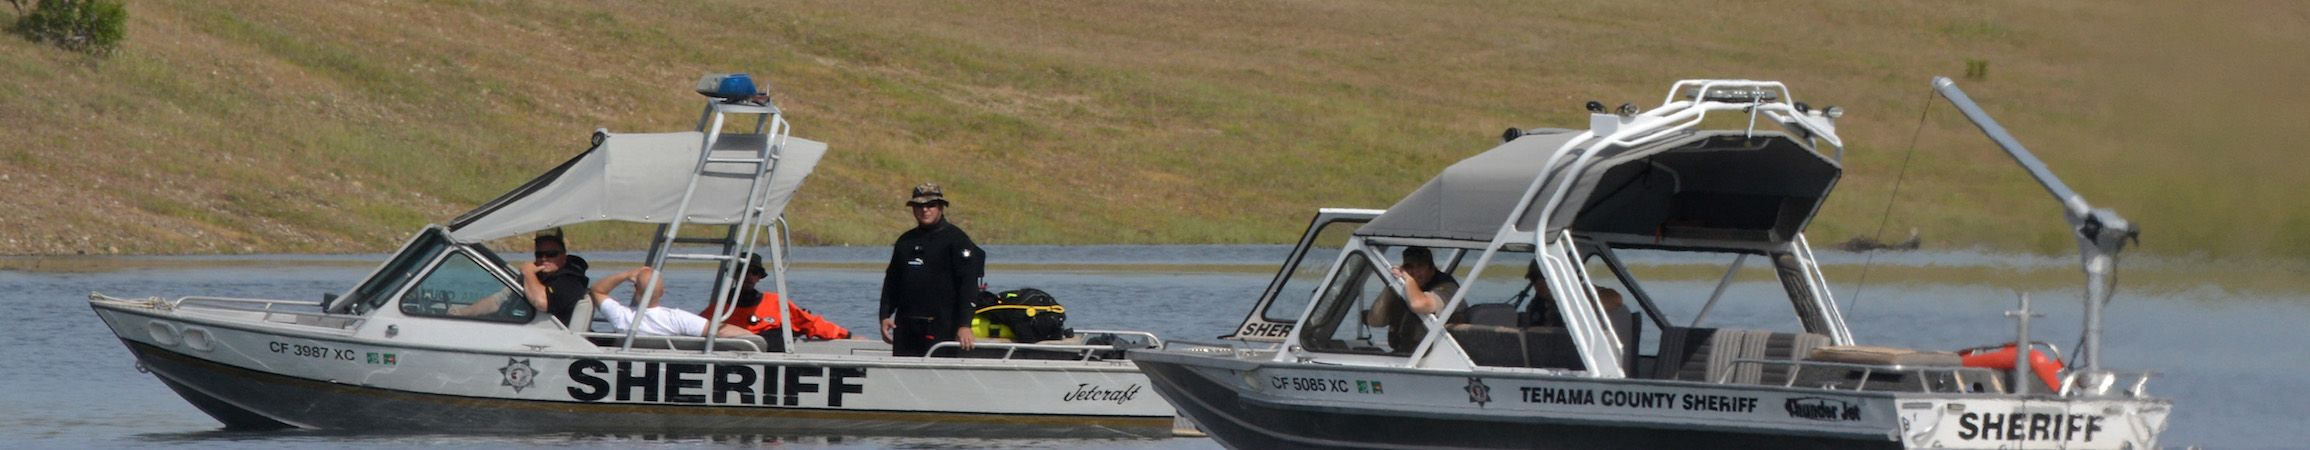 Boating| Operations Division | Tehama County Sheriff's Office